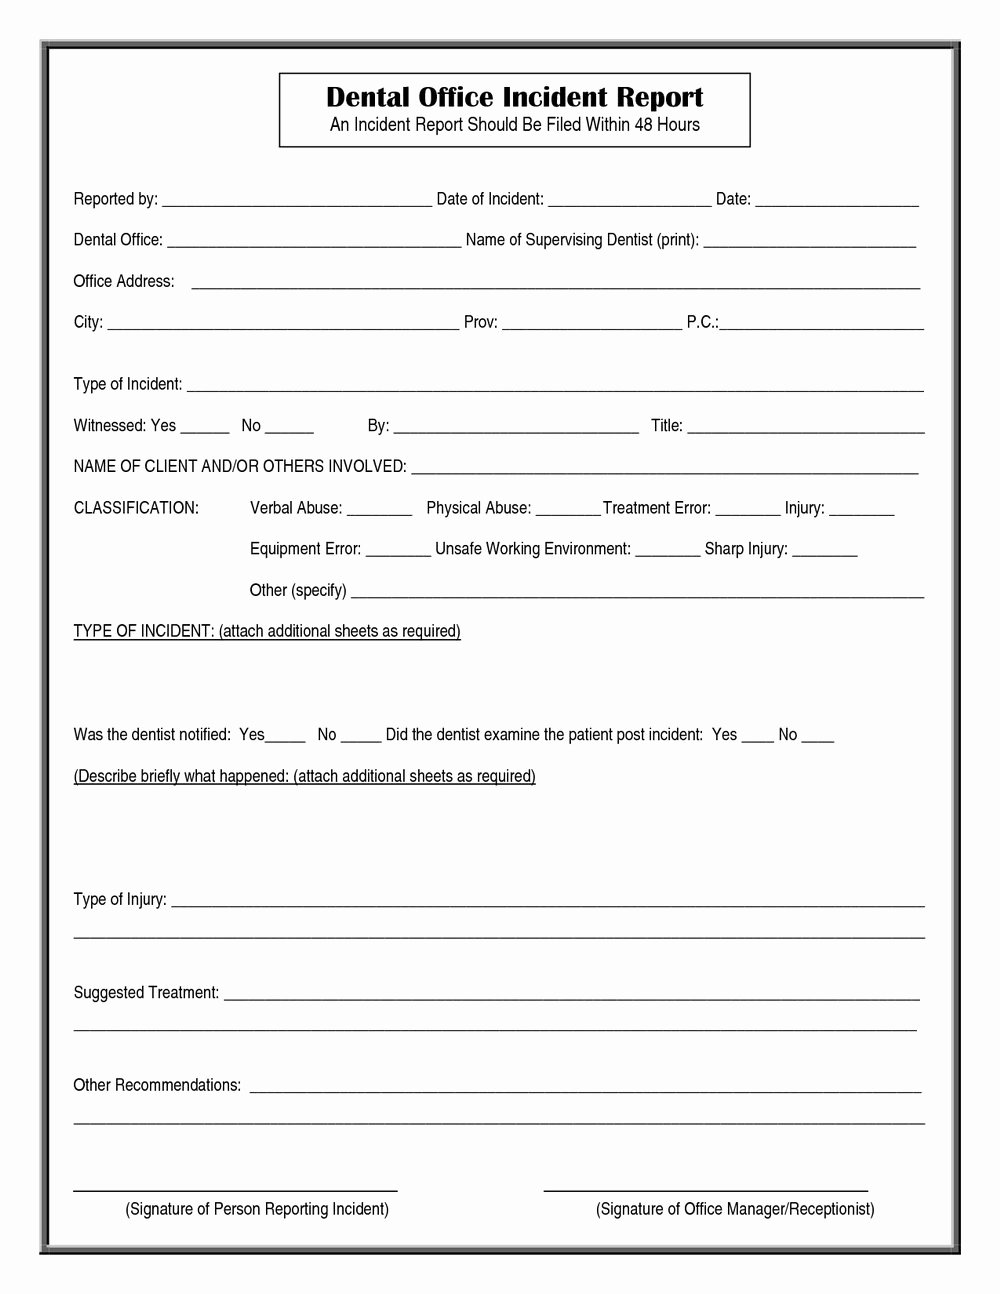 Physical Security Policy Template Luxury Dot Physical forms 2018 forms 4634